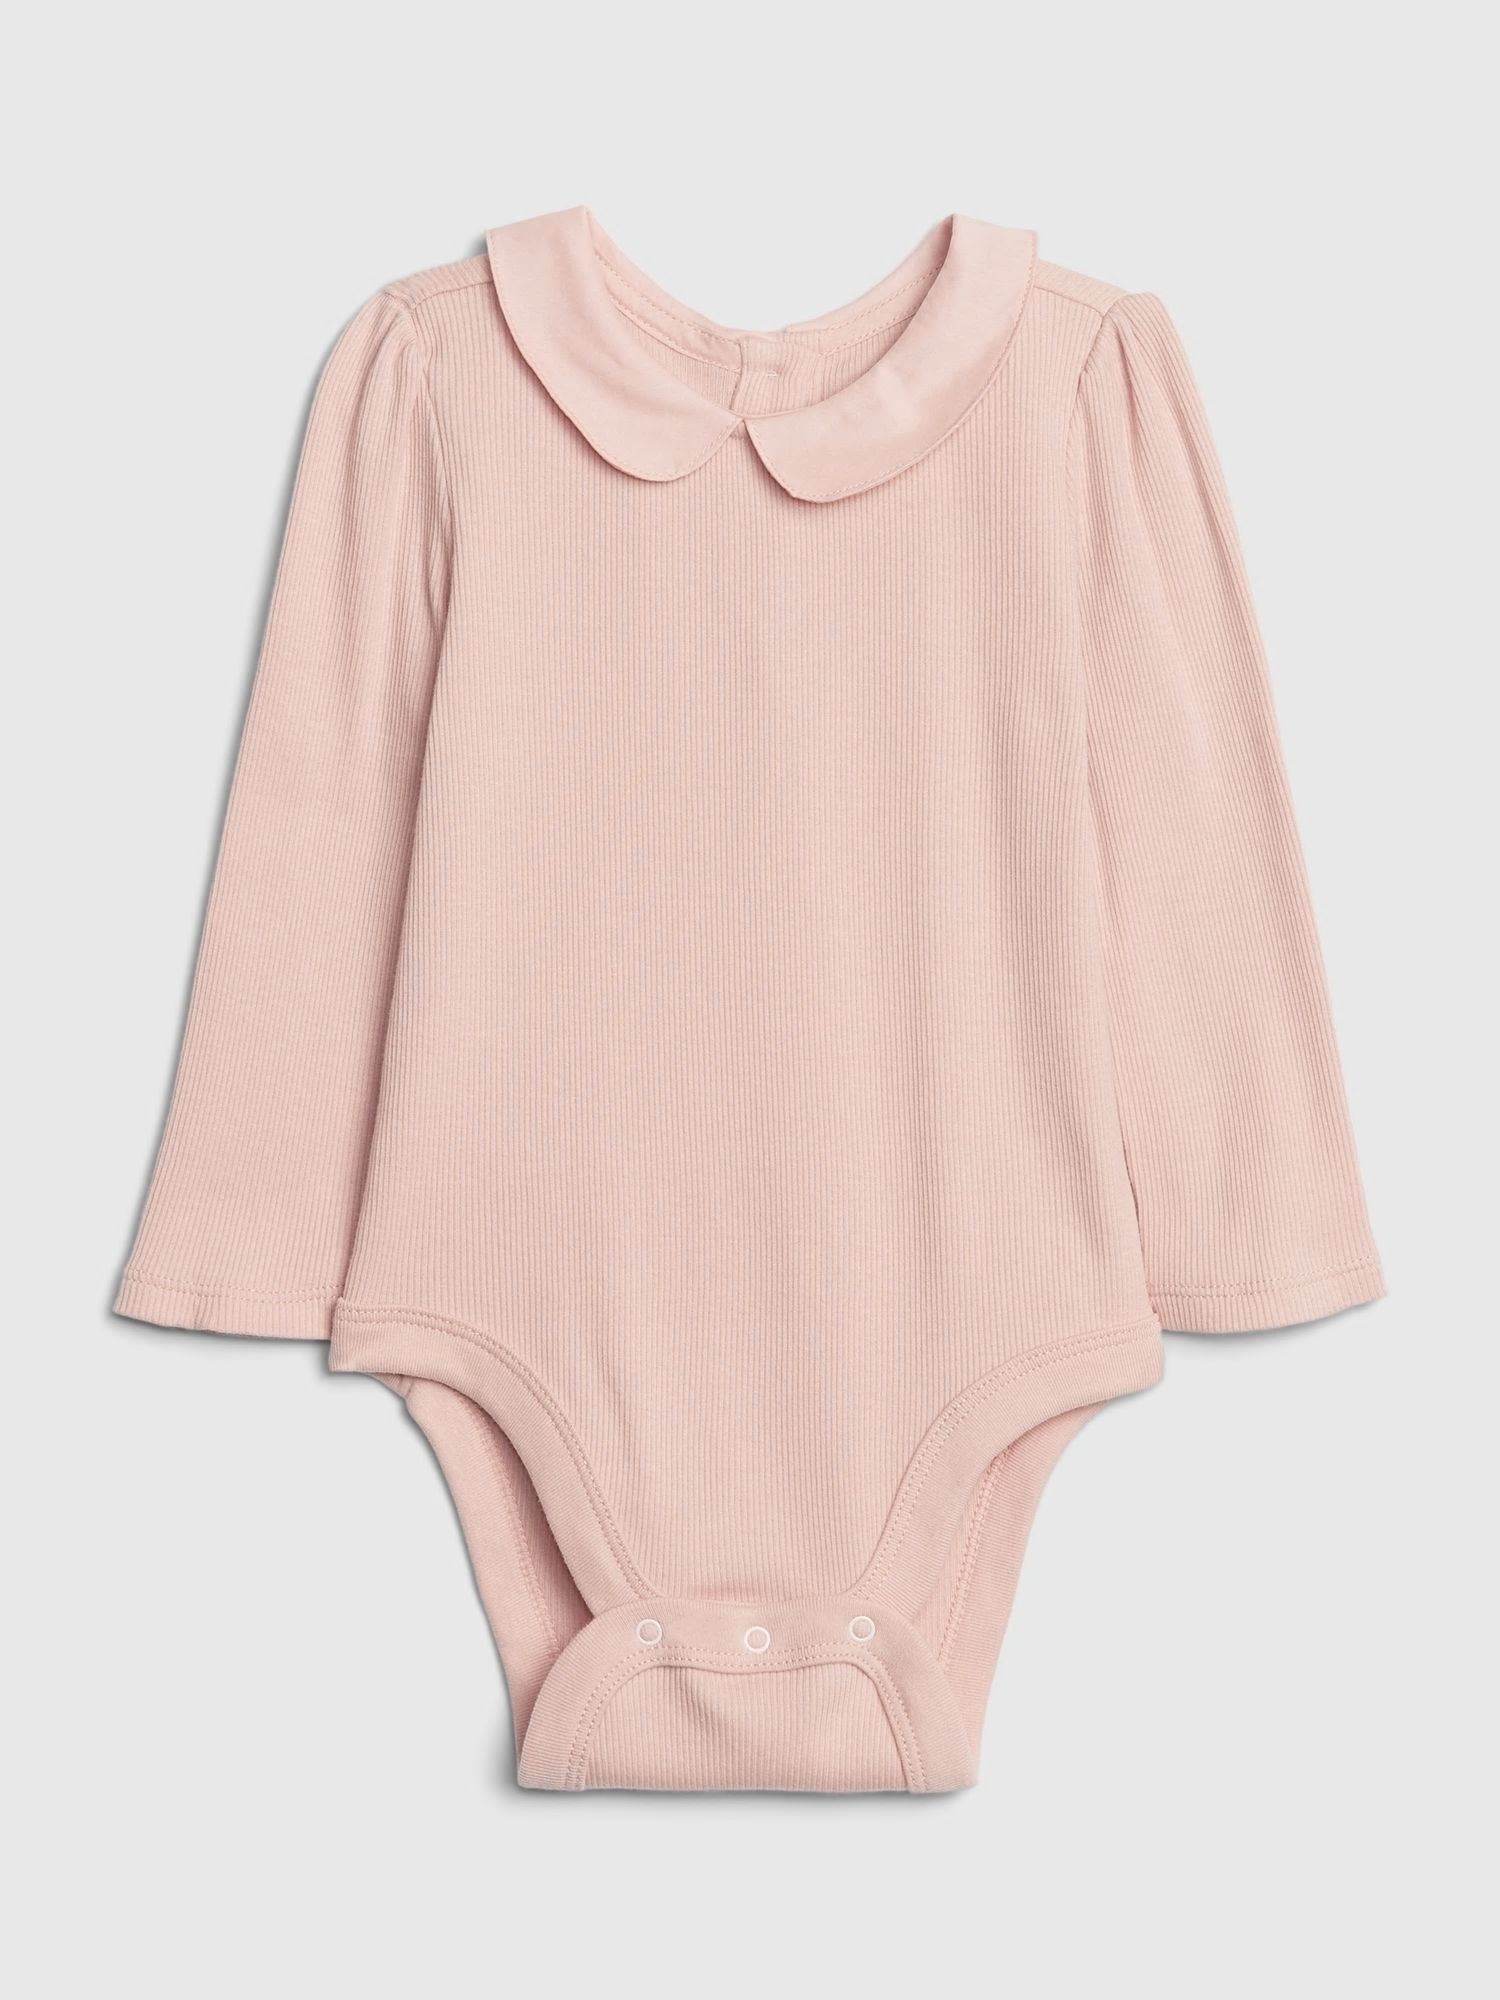 Baby body collar bodysuit (1)